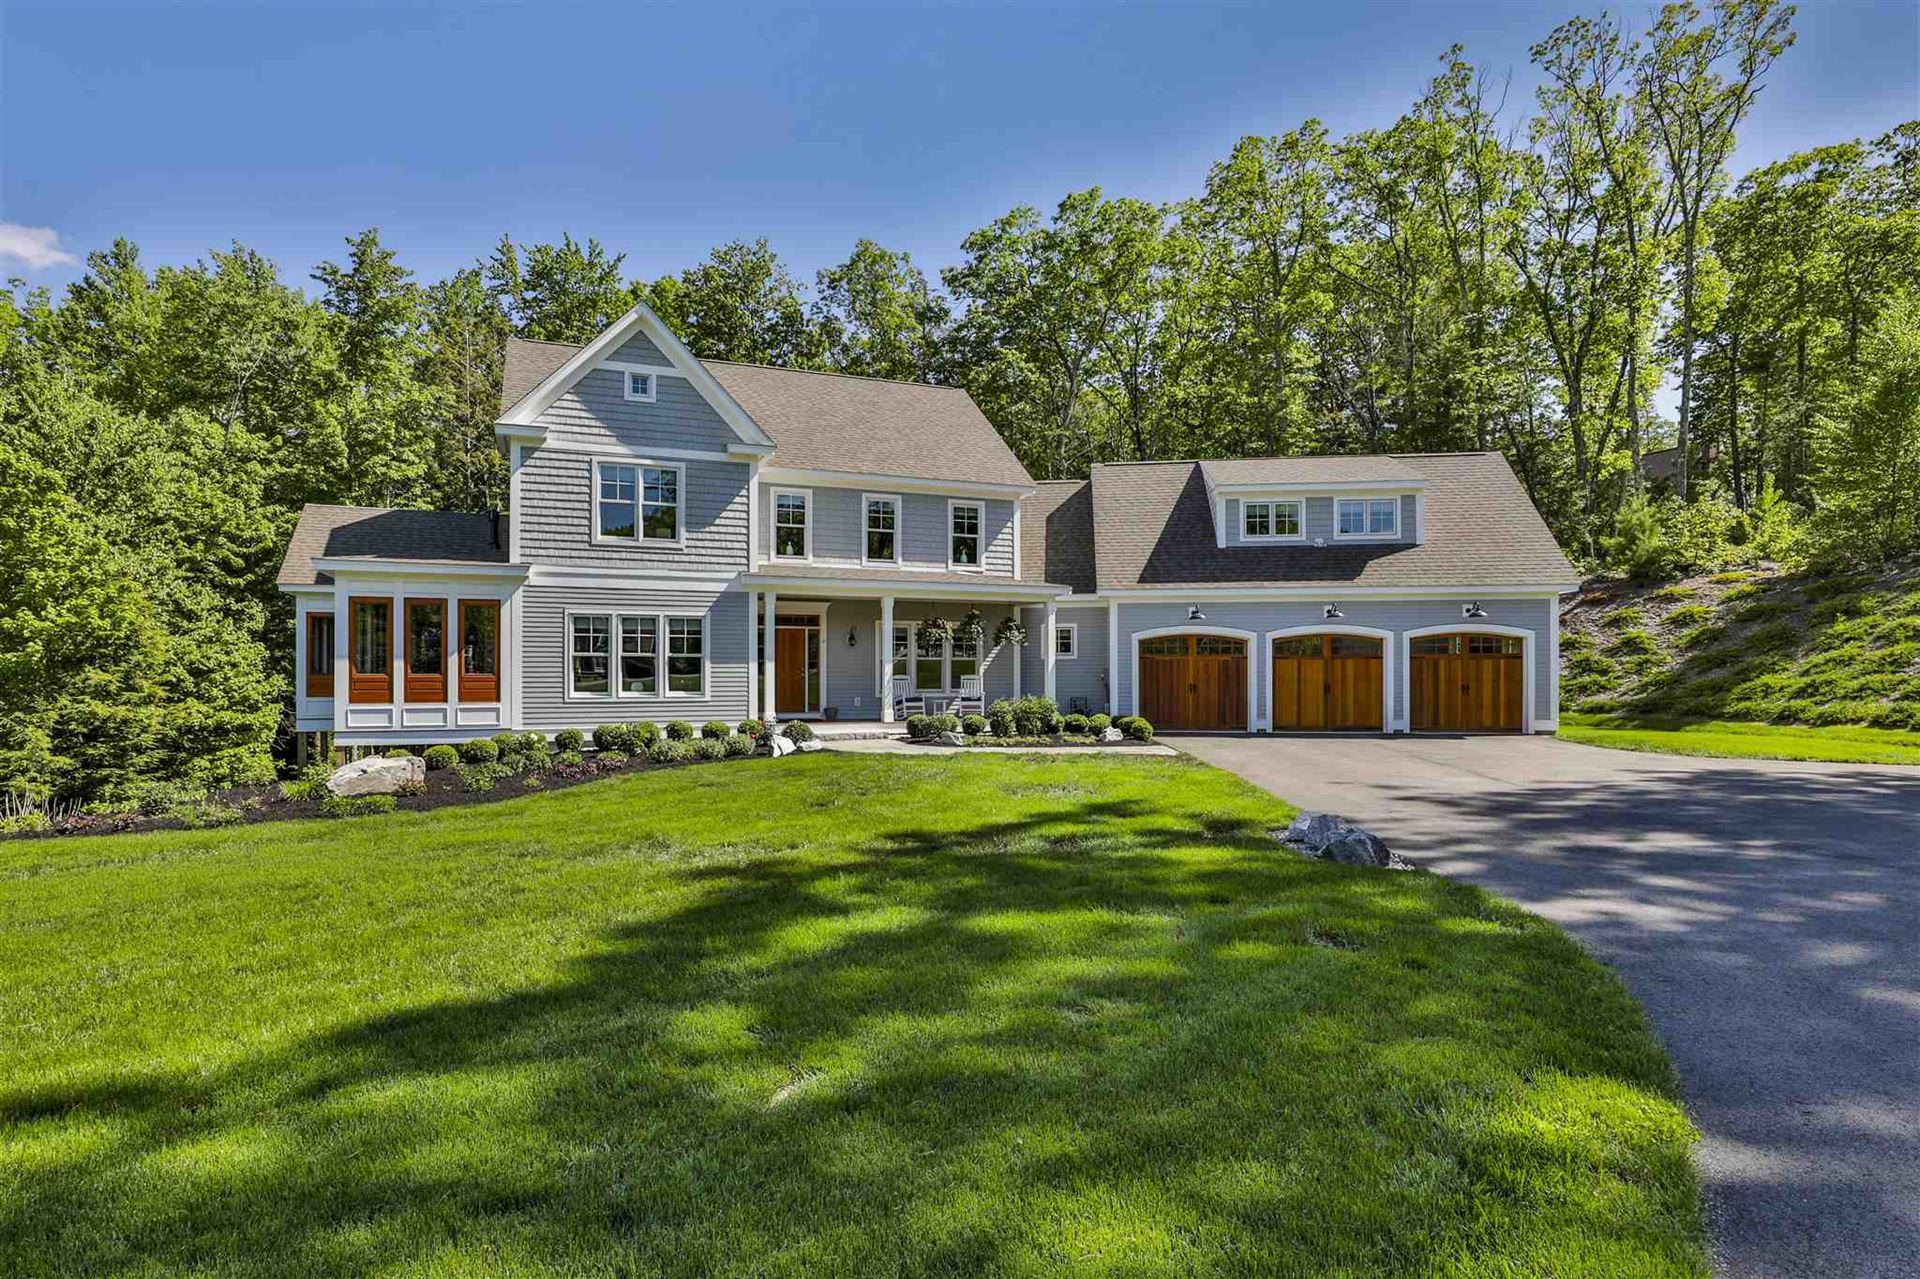 4 Founders Way, Amherst, NH 03031 - #: 4808569